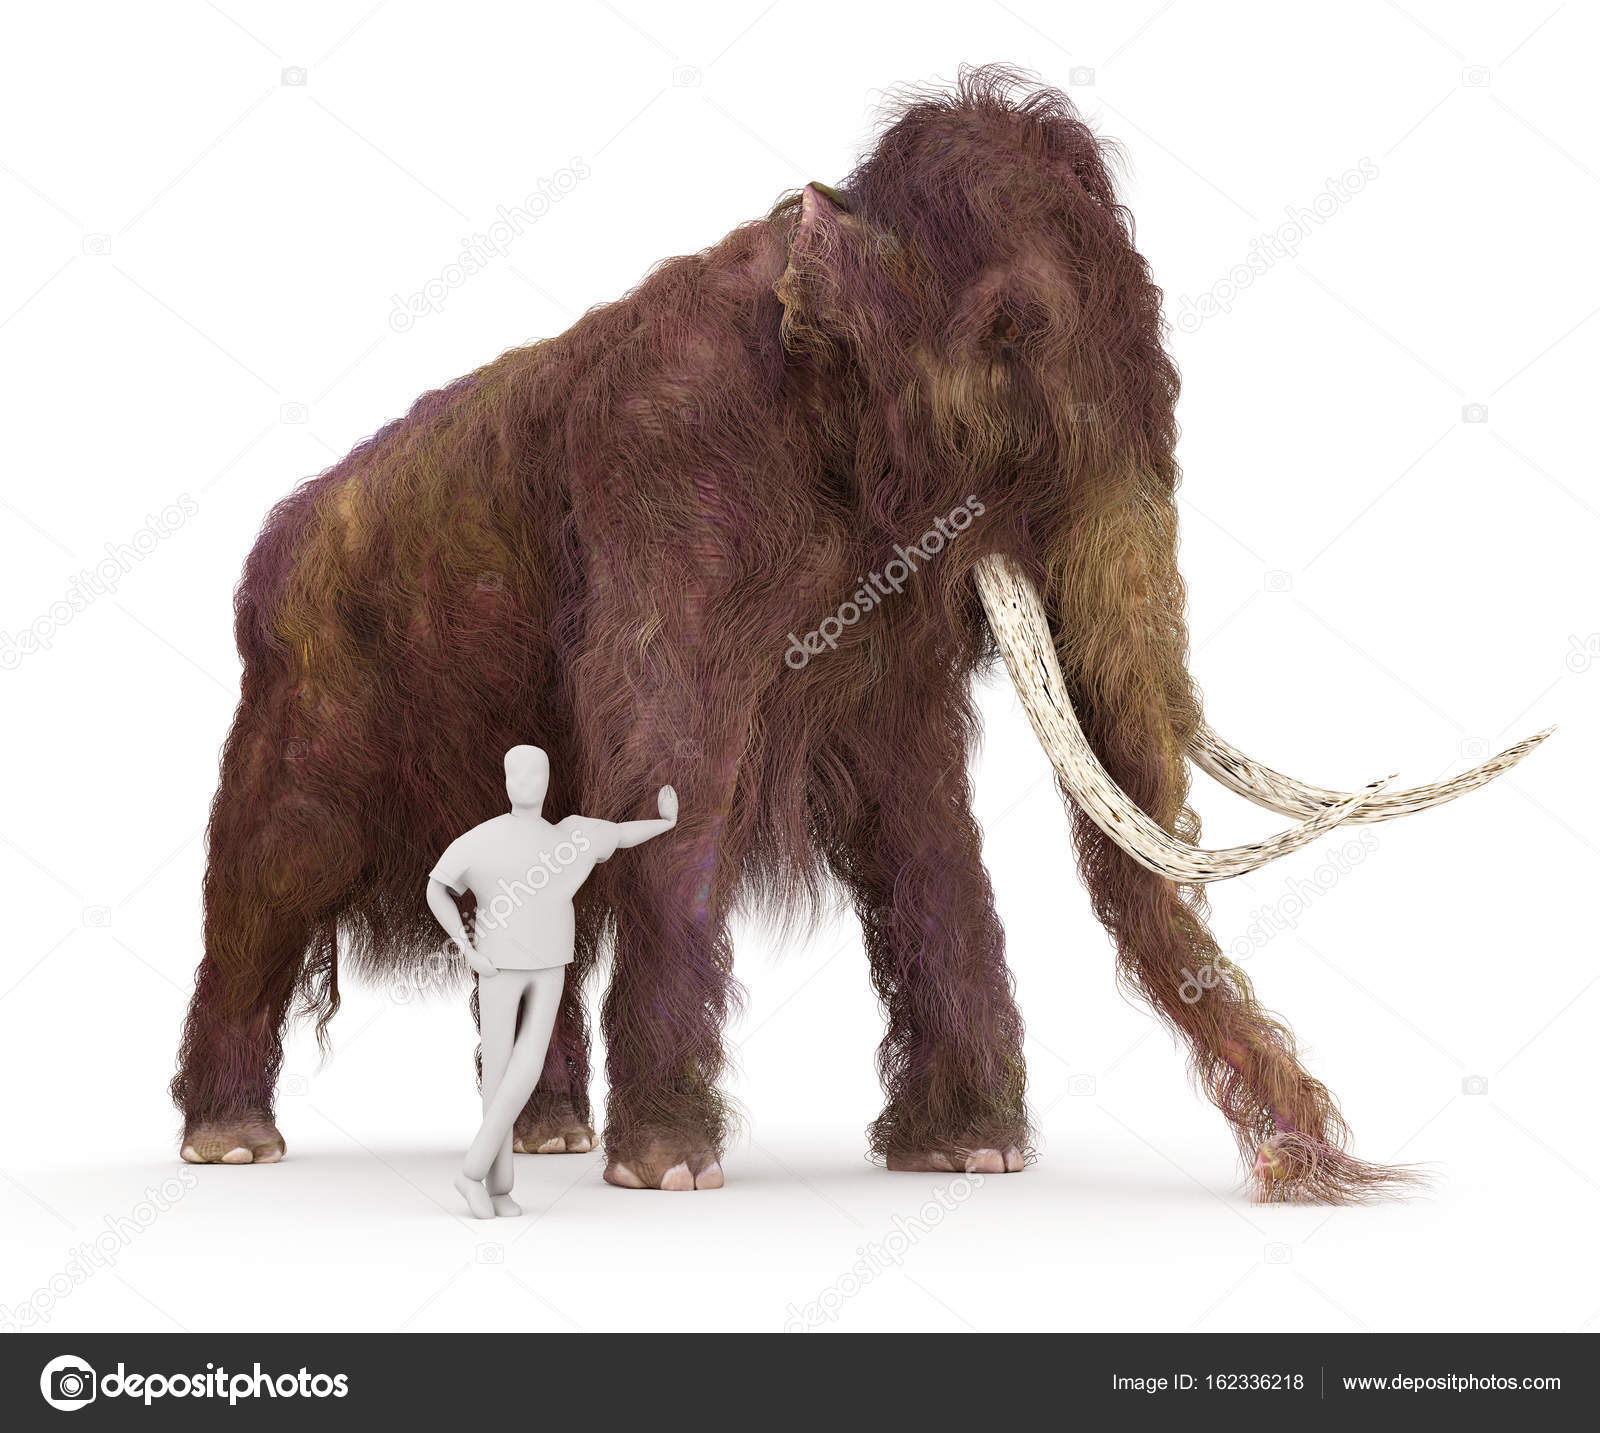 Woolly Mammoth And Human Size - 258.4KB